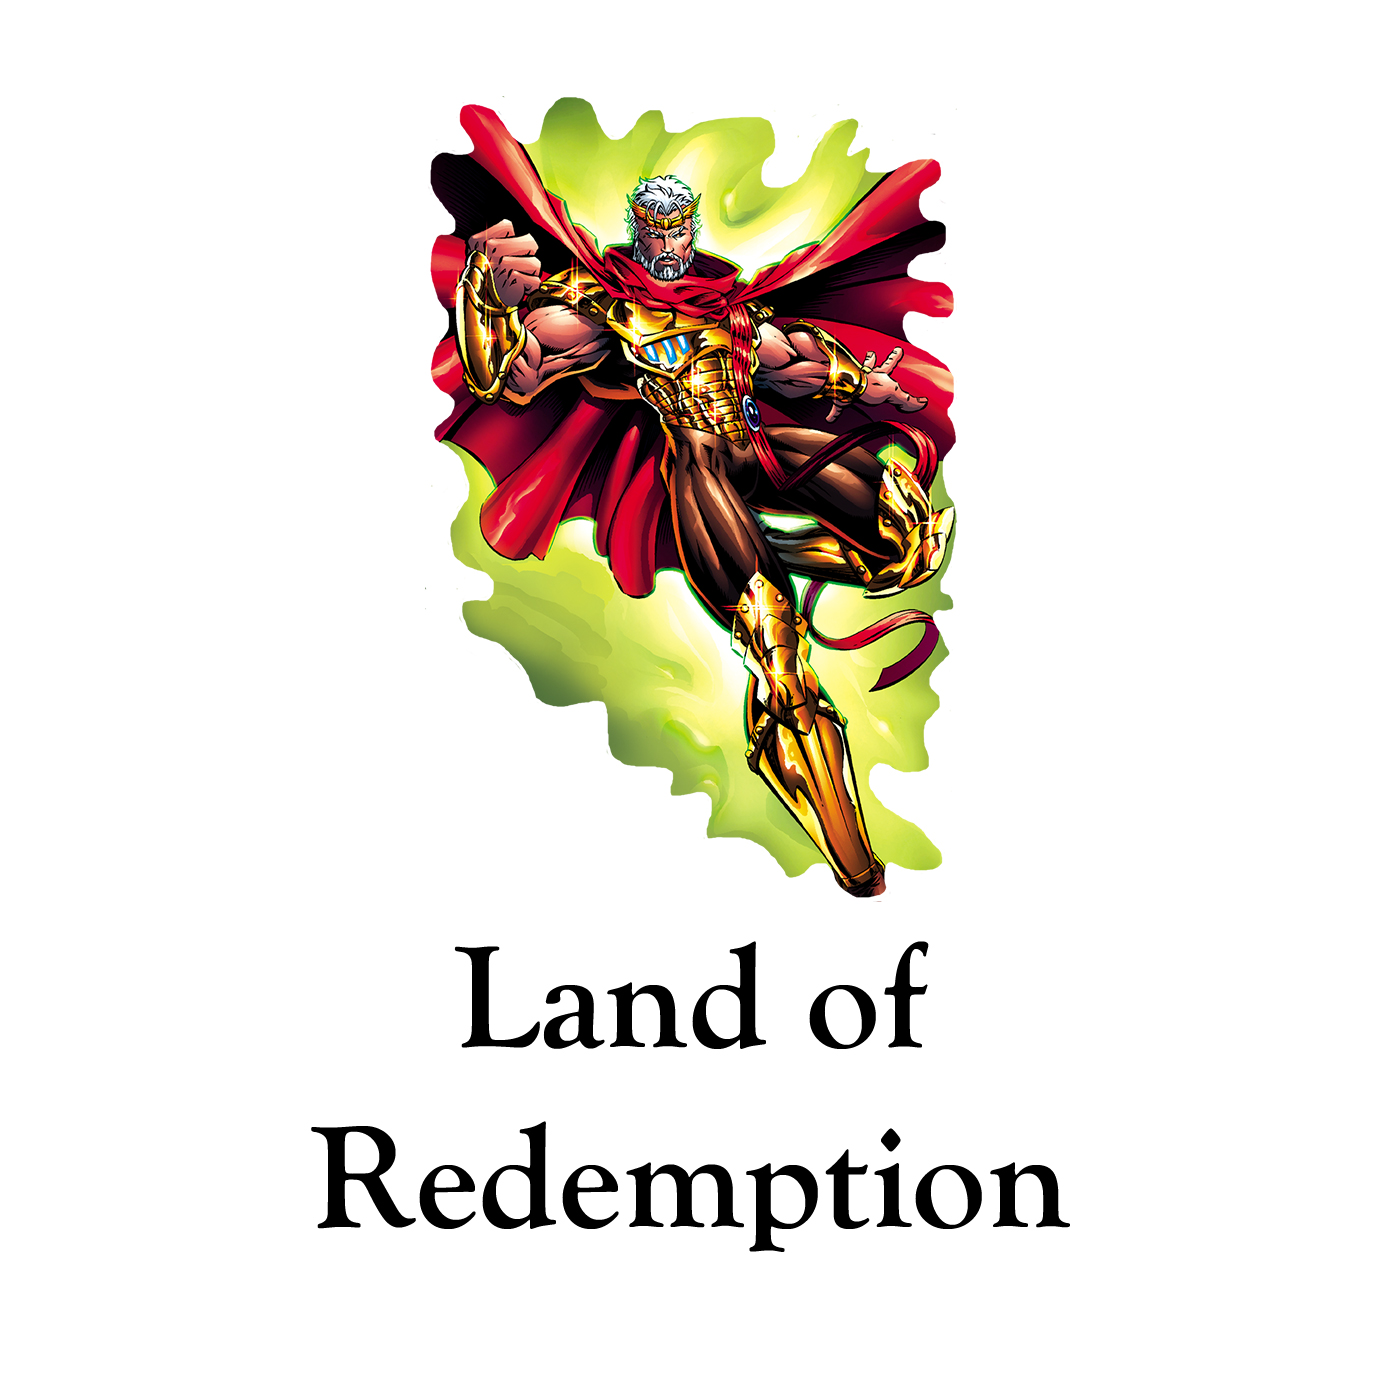 Land of Redemption